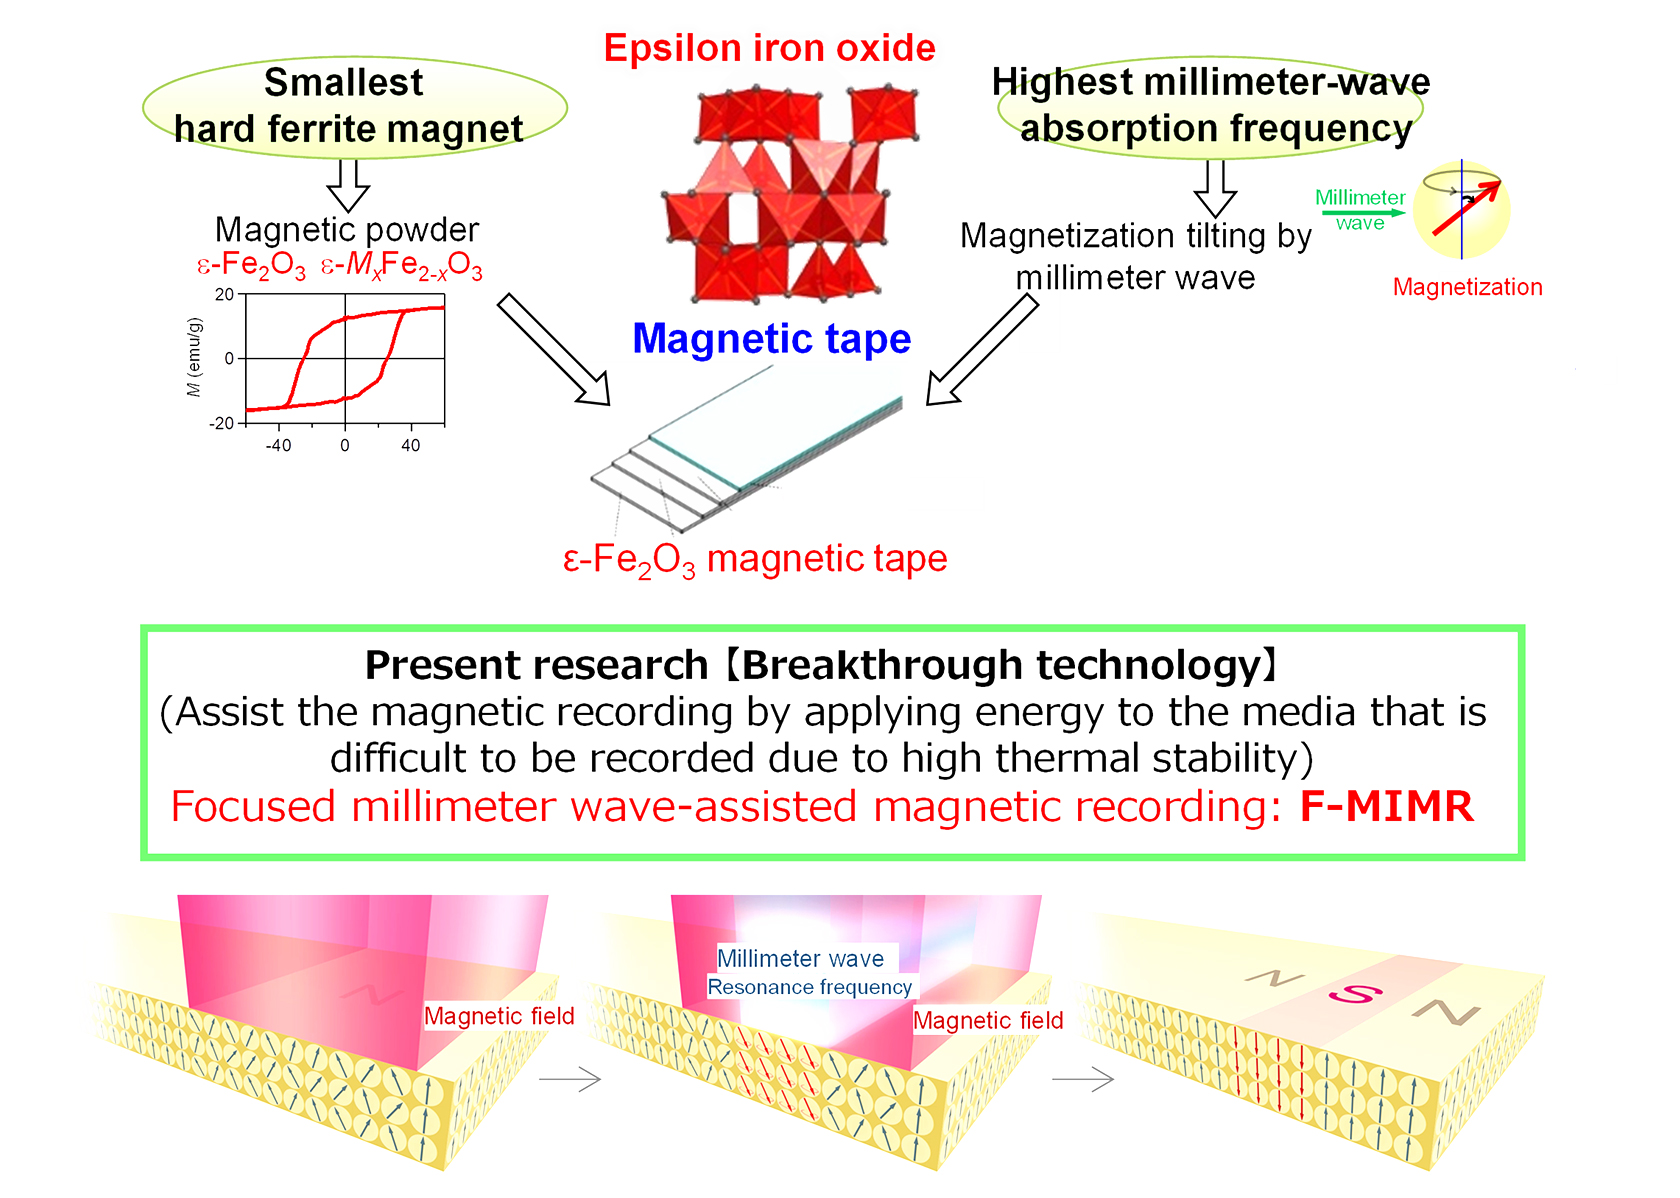 """Figure 1. Concept of """"Focused millimeter wave-assisted magnetic recording"""" (F-MIMR)."""